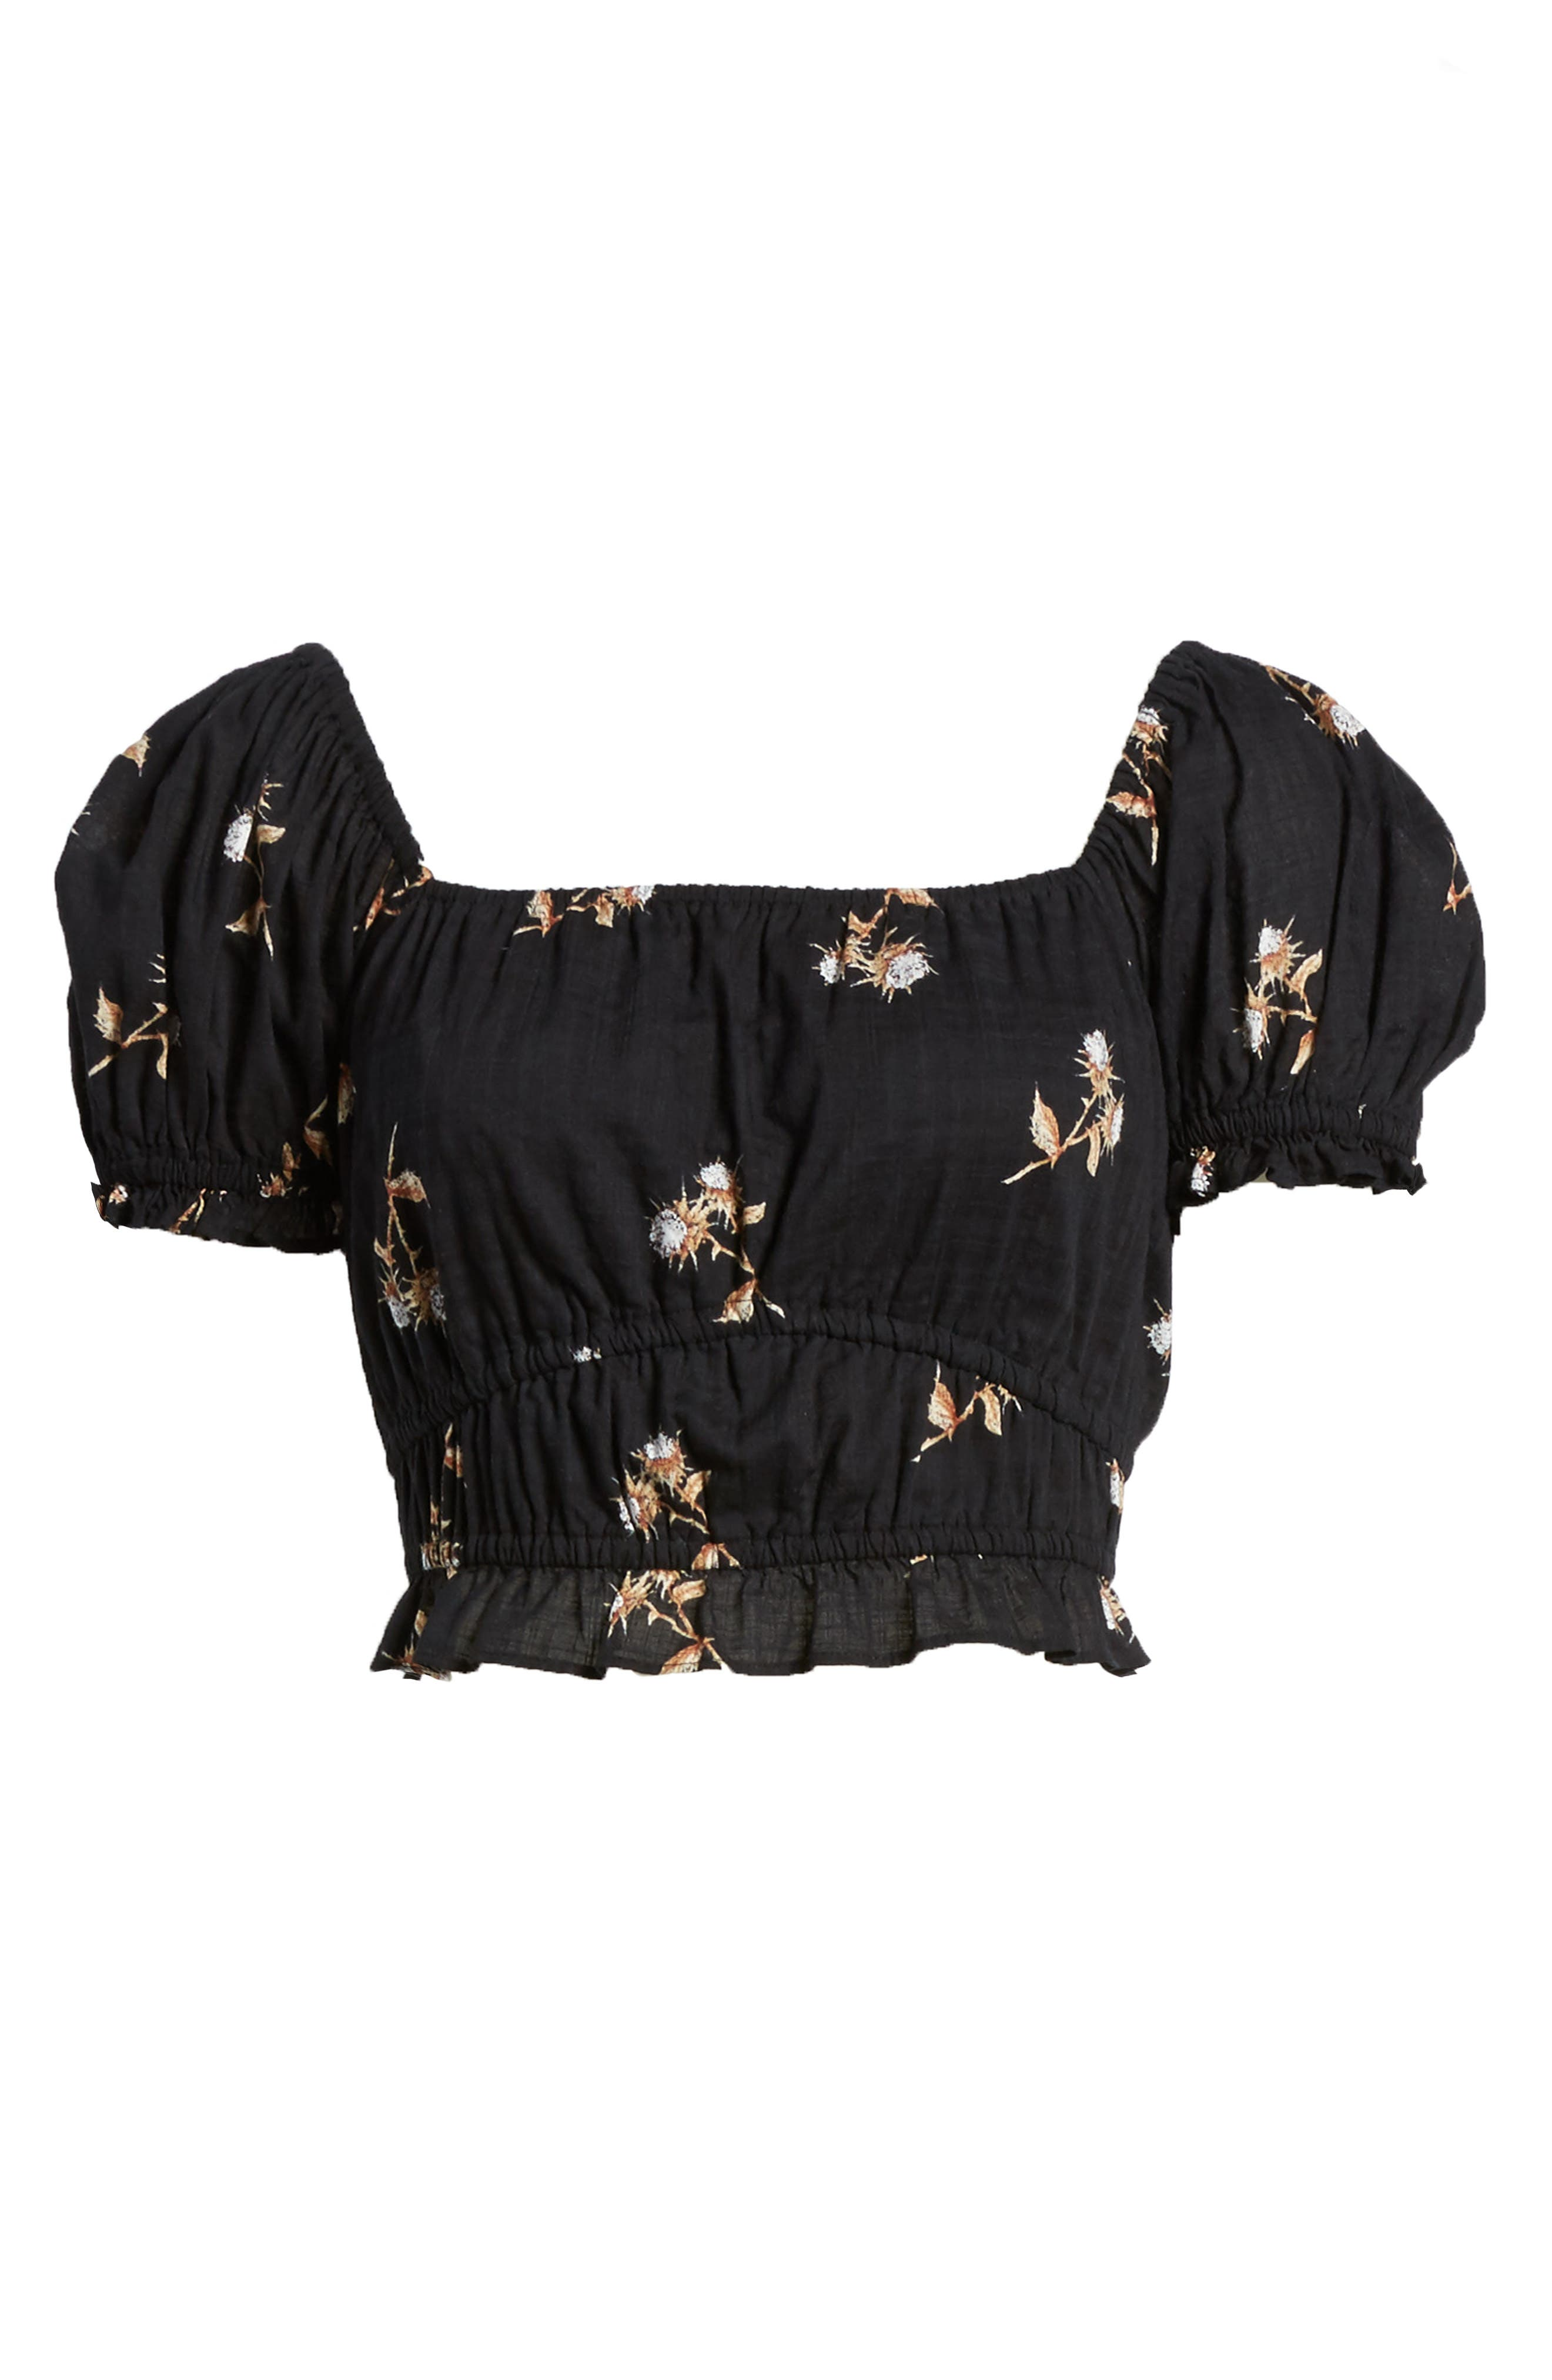 Puff Sleeve Crop Top,                             Alternate thumbnail 8, color,                             Black Washy Bouquet